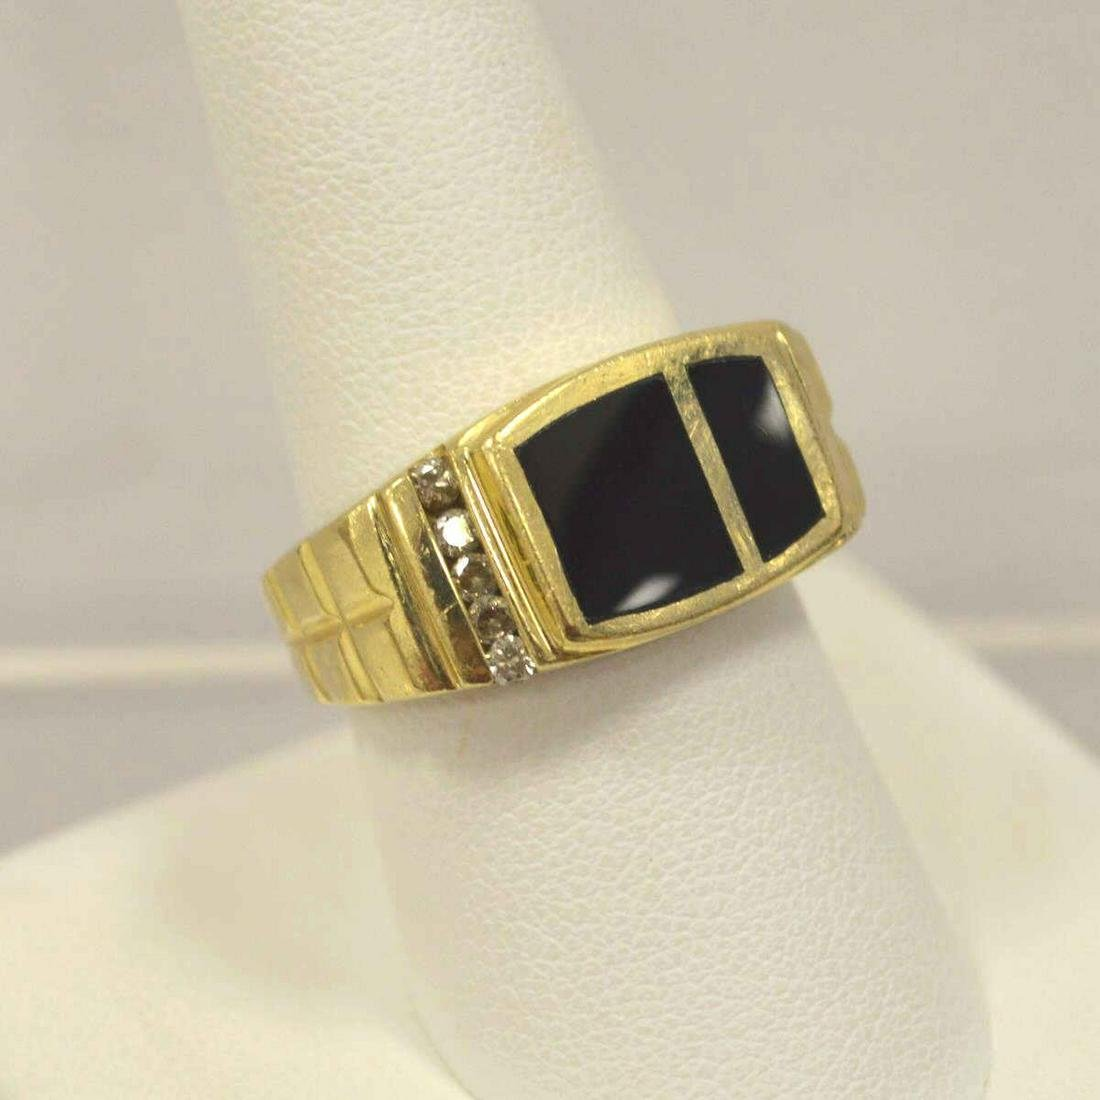 14kt yellow gold onyx and diamond ring